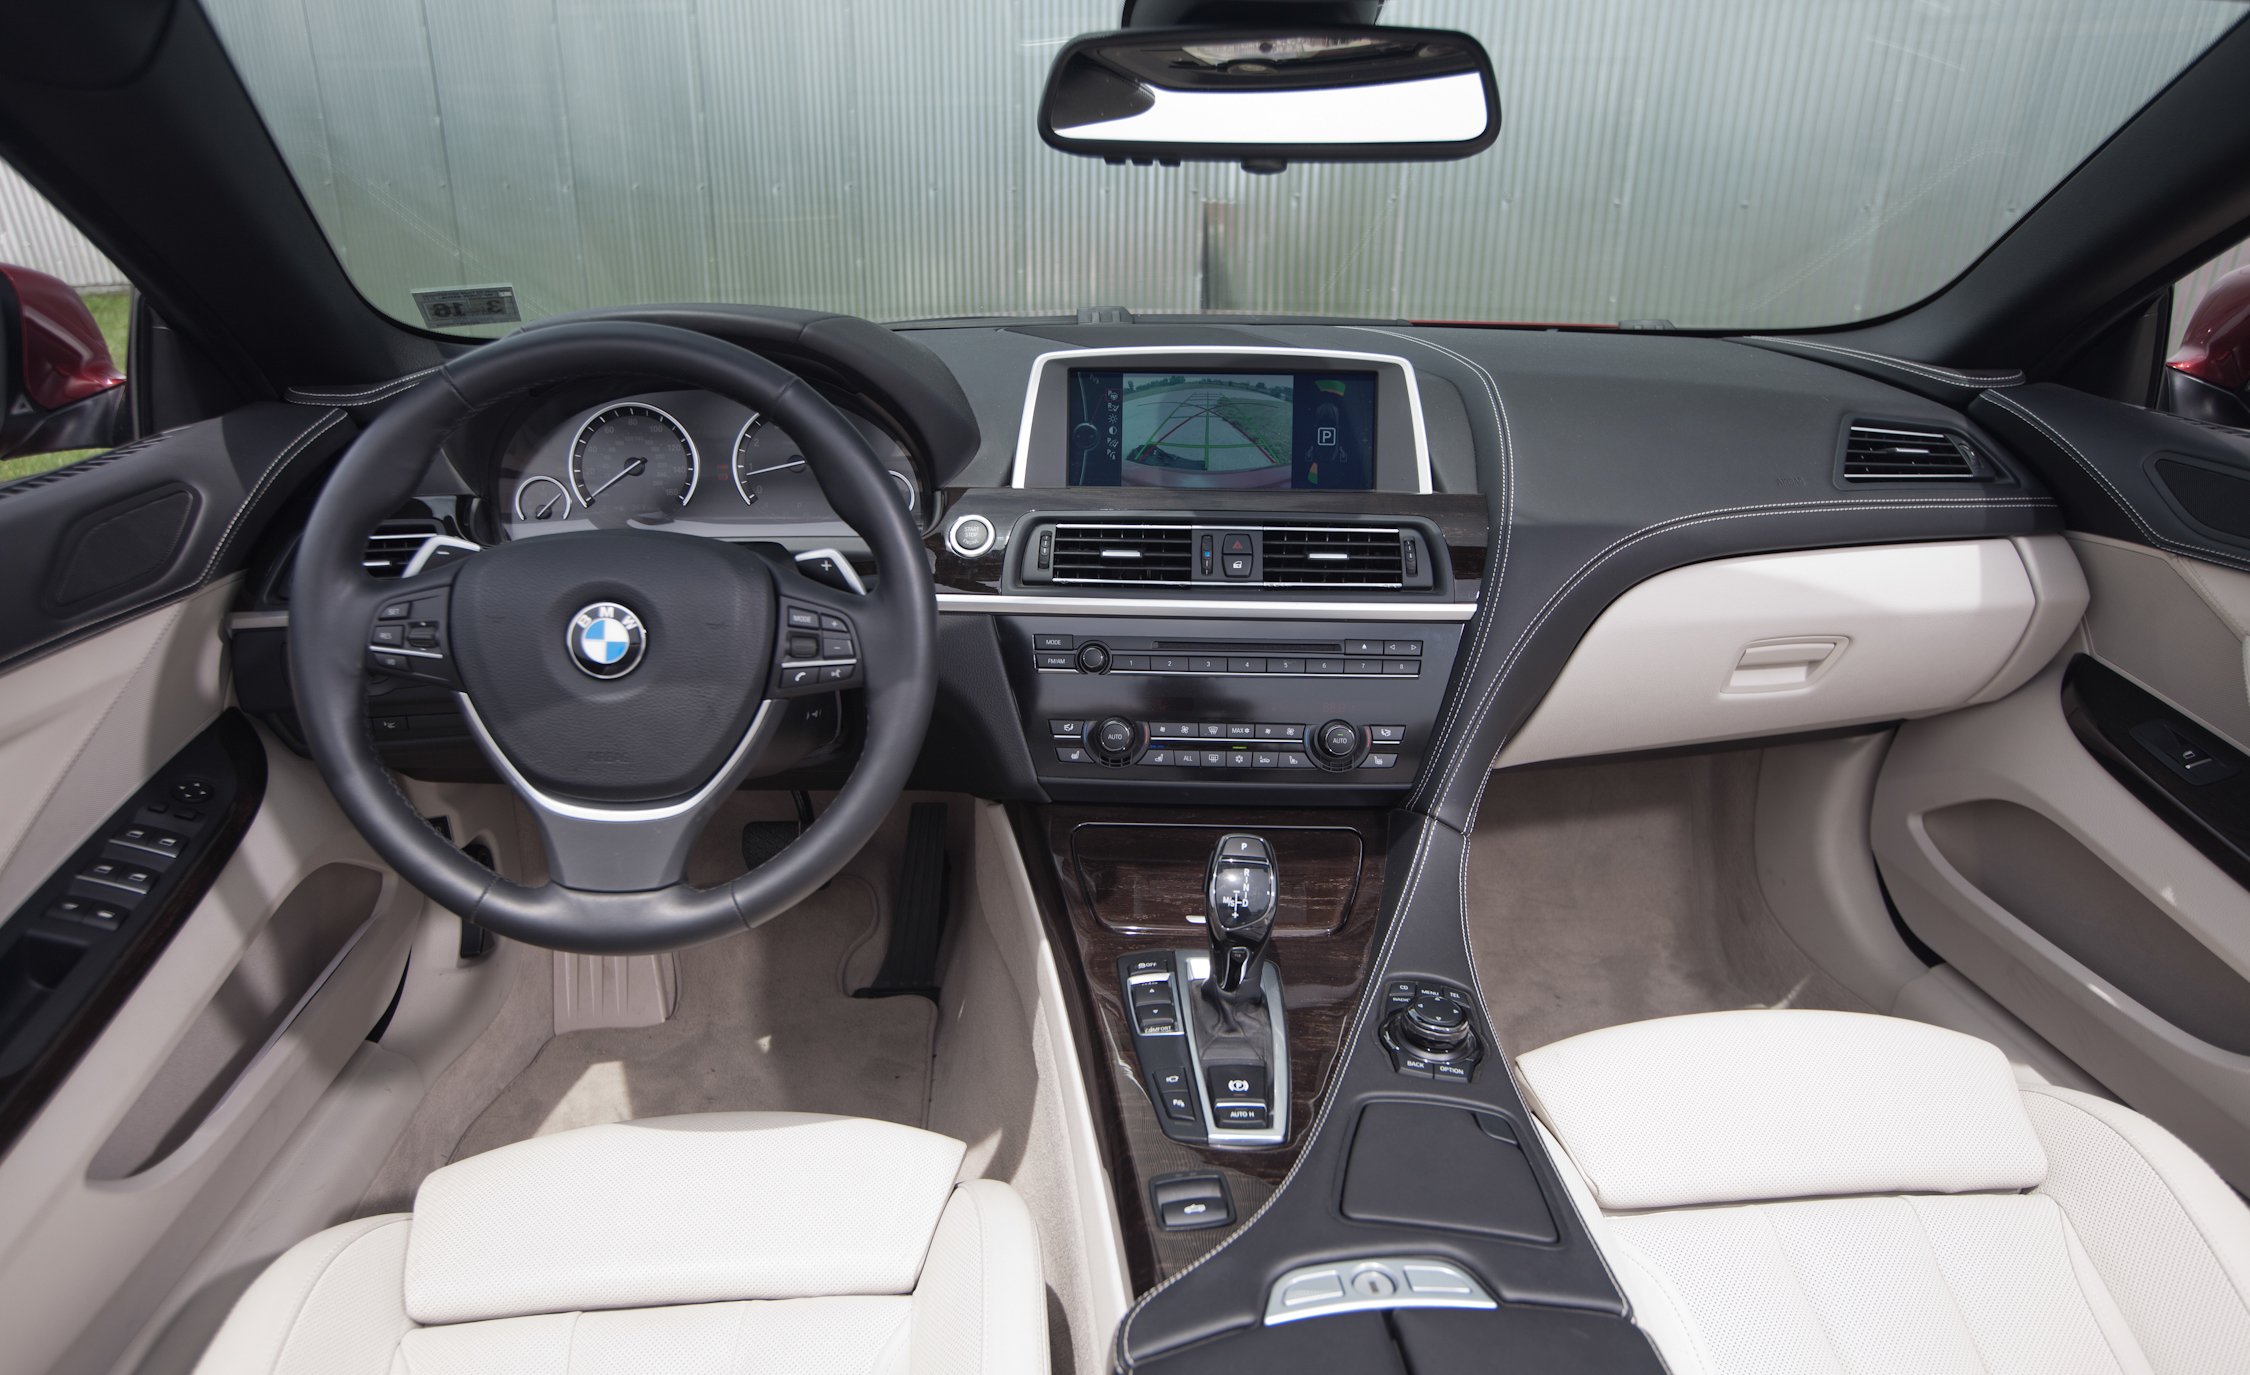 2012 BMW 650i Convertible Interior Dashboard (Photo 12 of 19)